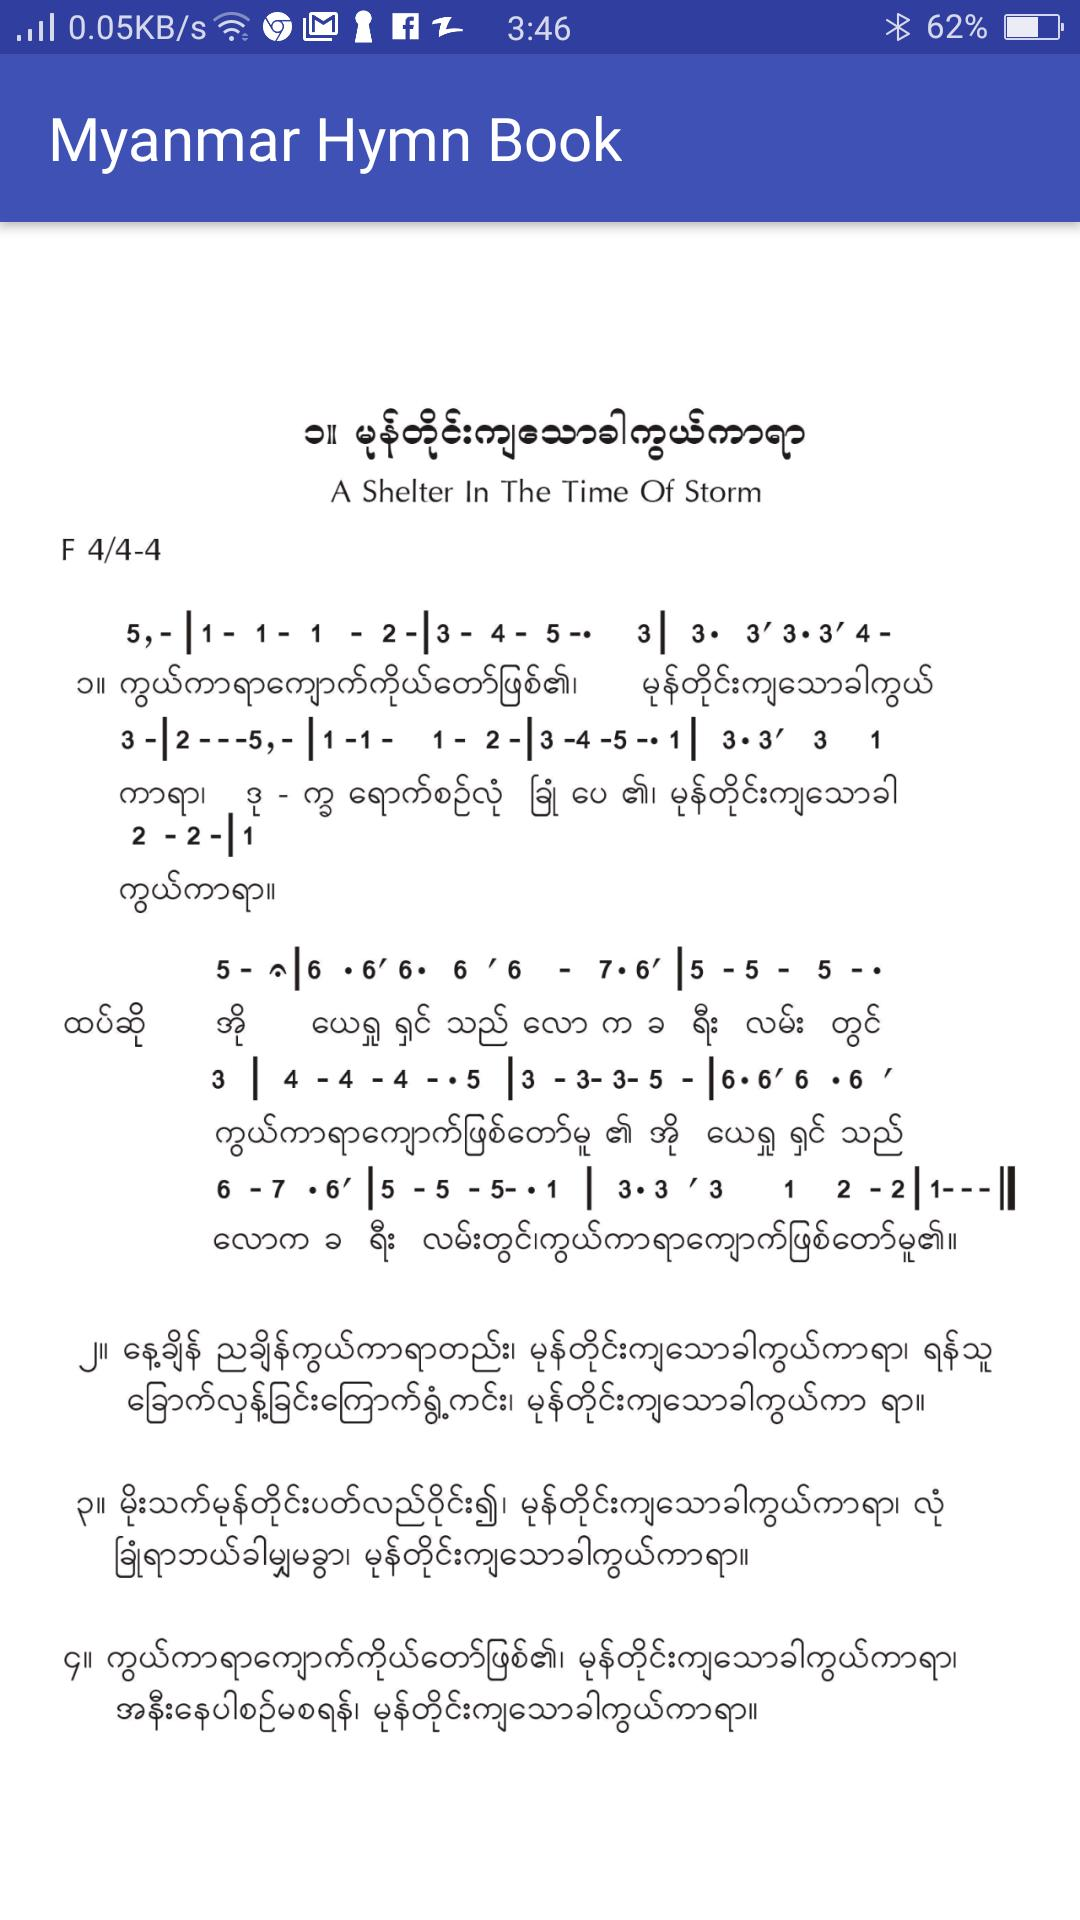 Myanmar Hymns Book for Android - APK Download